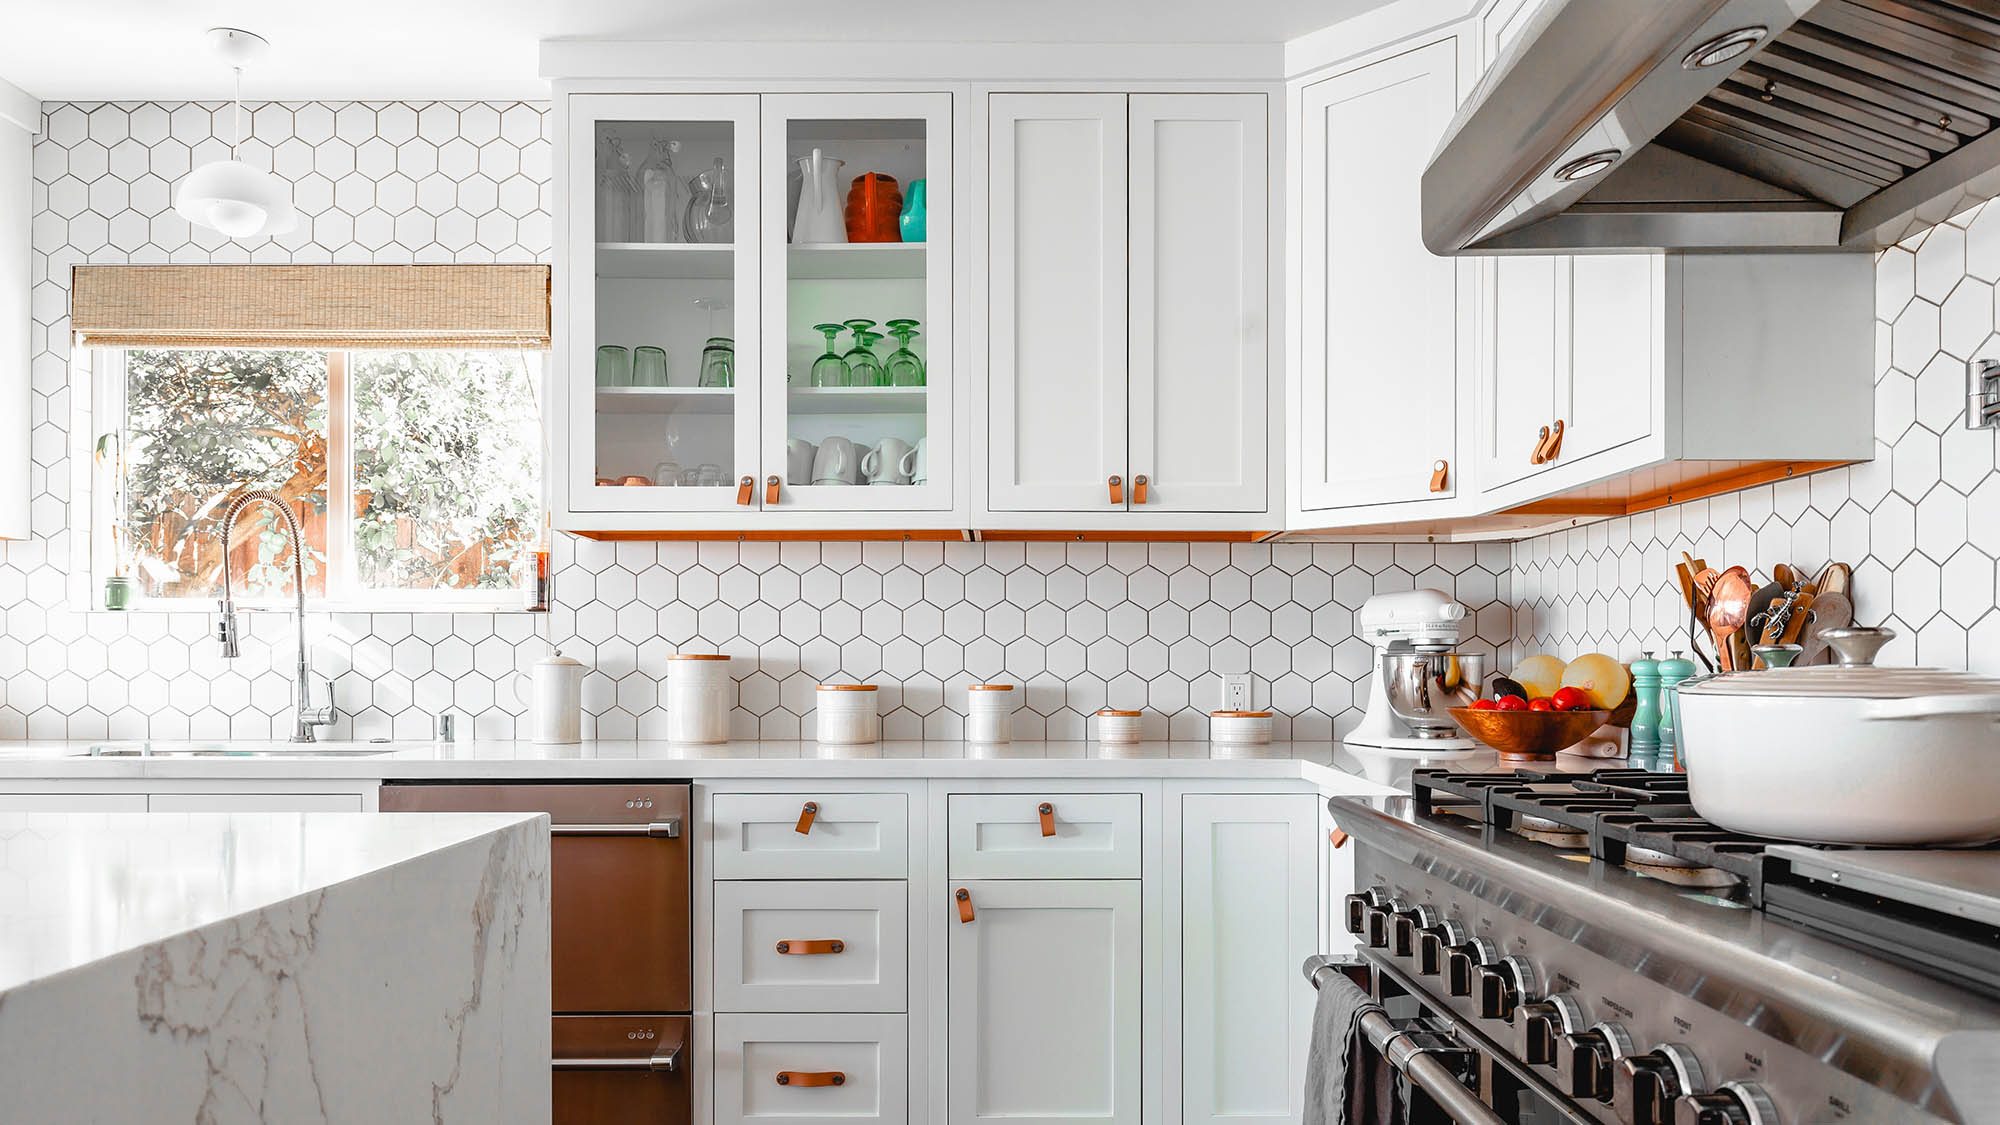 White tiled kitchen with white cabinets and leather pulls